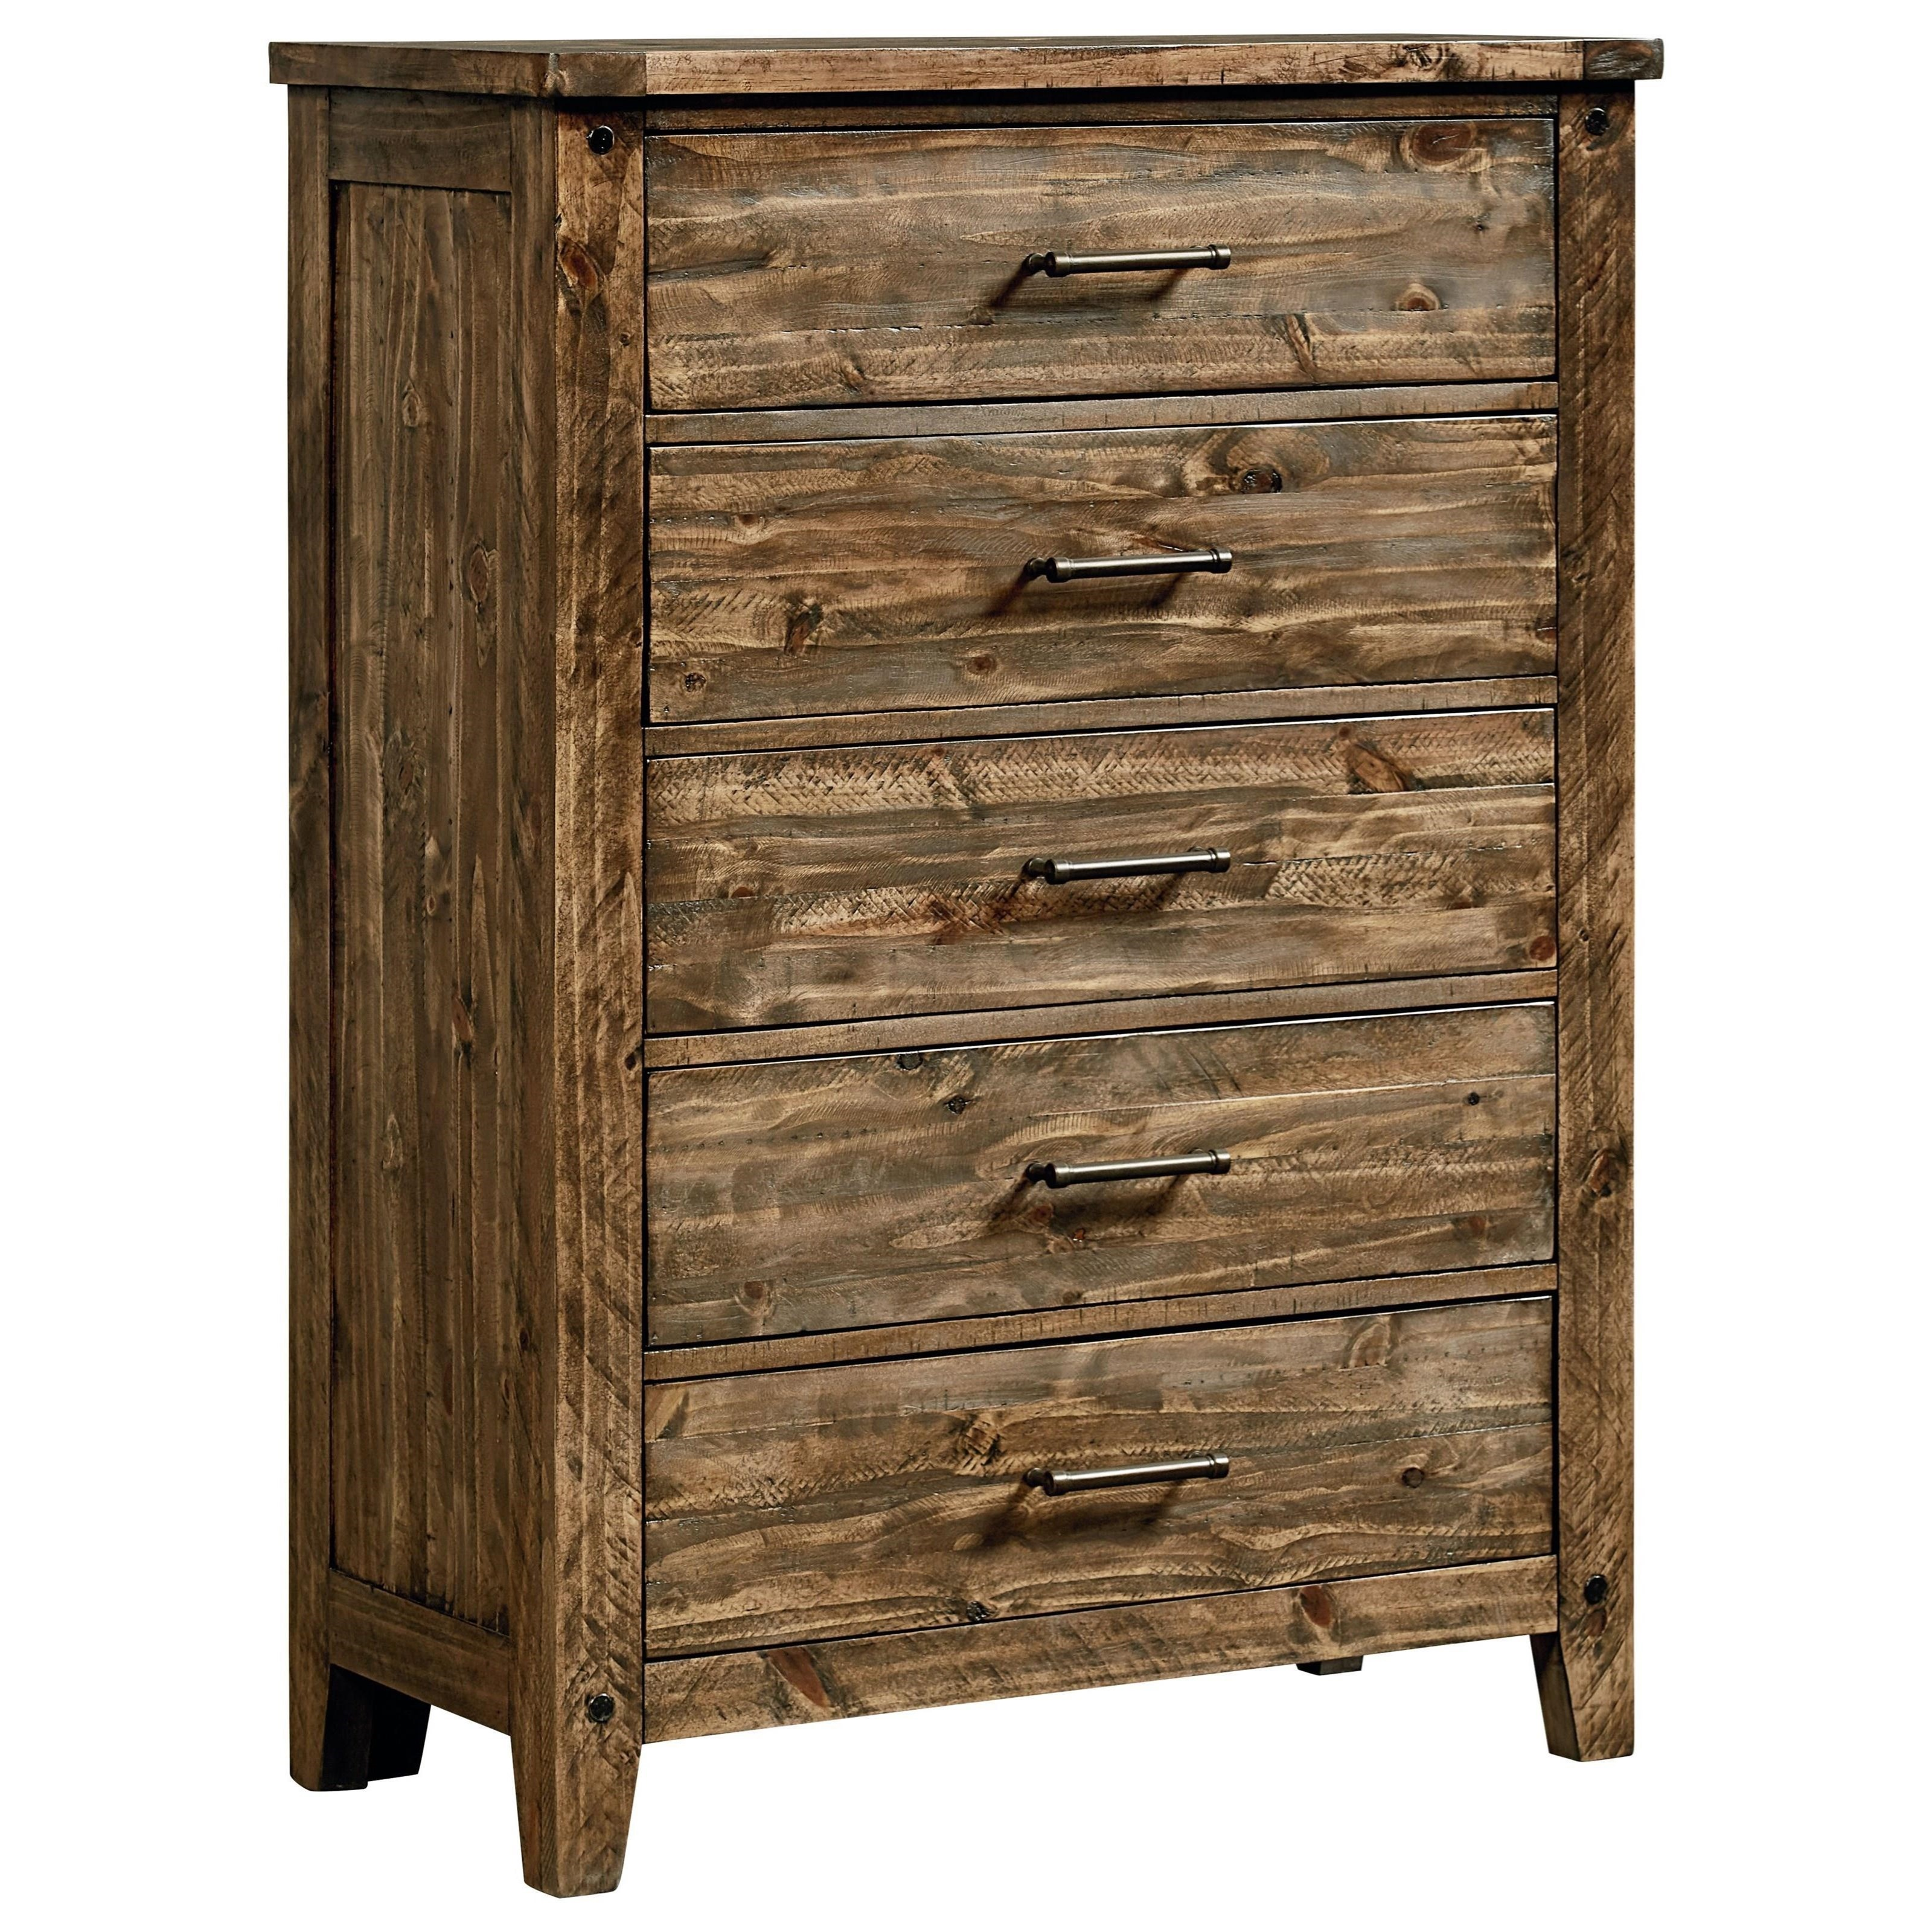 Standard Furniture Nelson Drawer Chest - Item Number: 90255